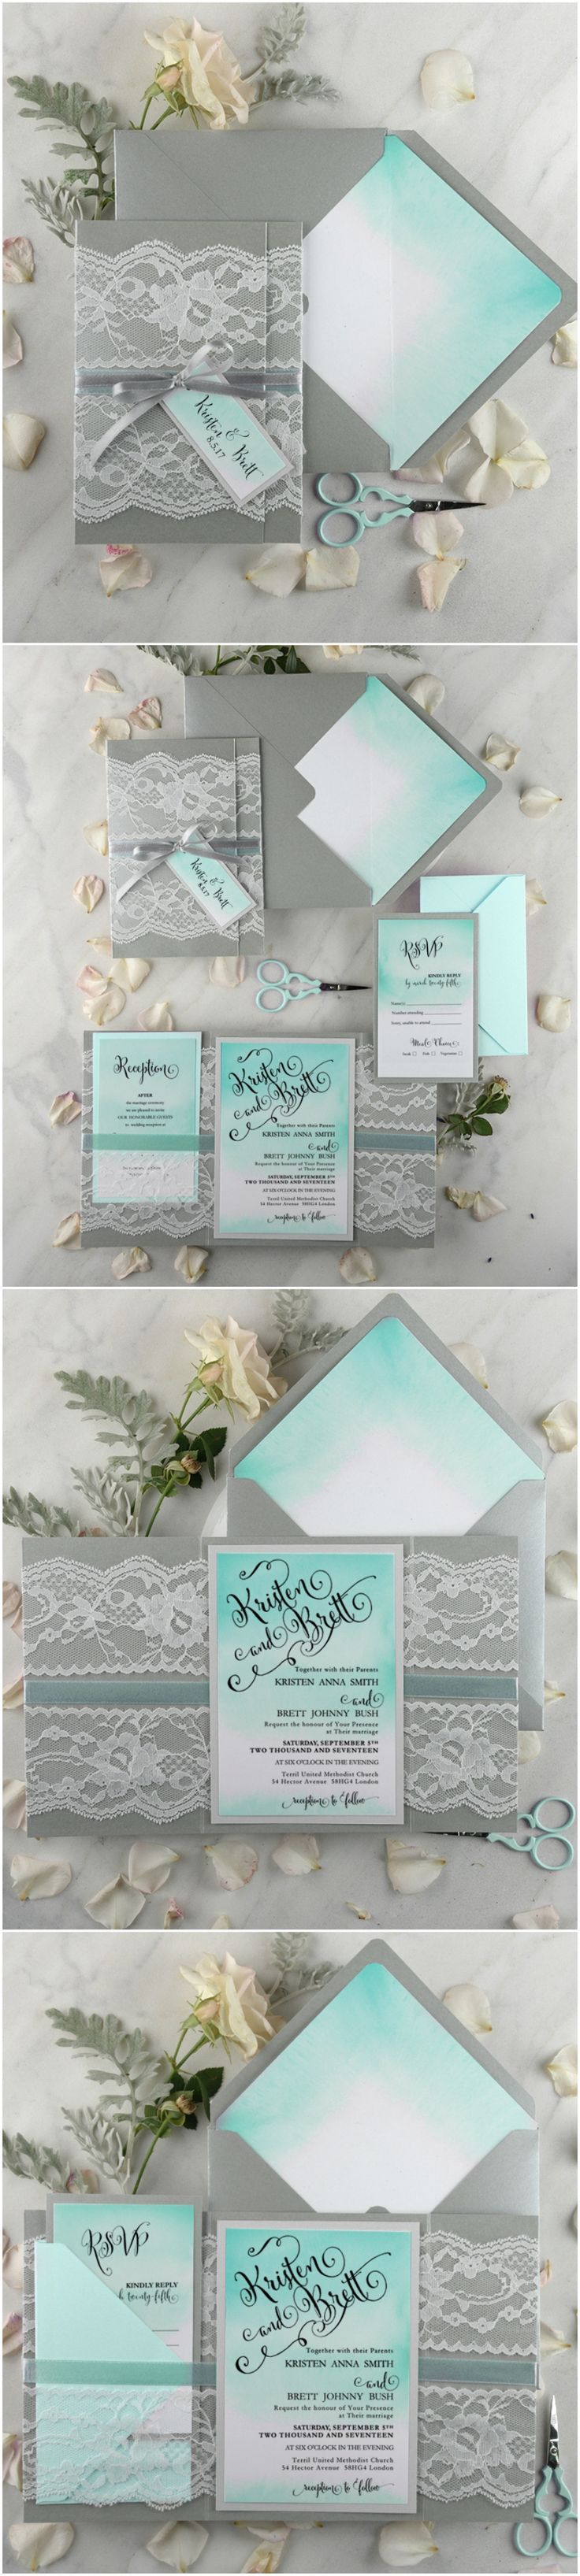 Tiffany blue Lace Ombre Wedding Invitations #ombre #blue #tiffanyblue #watercolor #weddingcolors #weddingideas #stationery #invitations